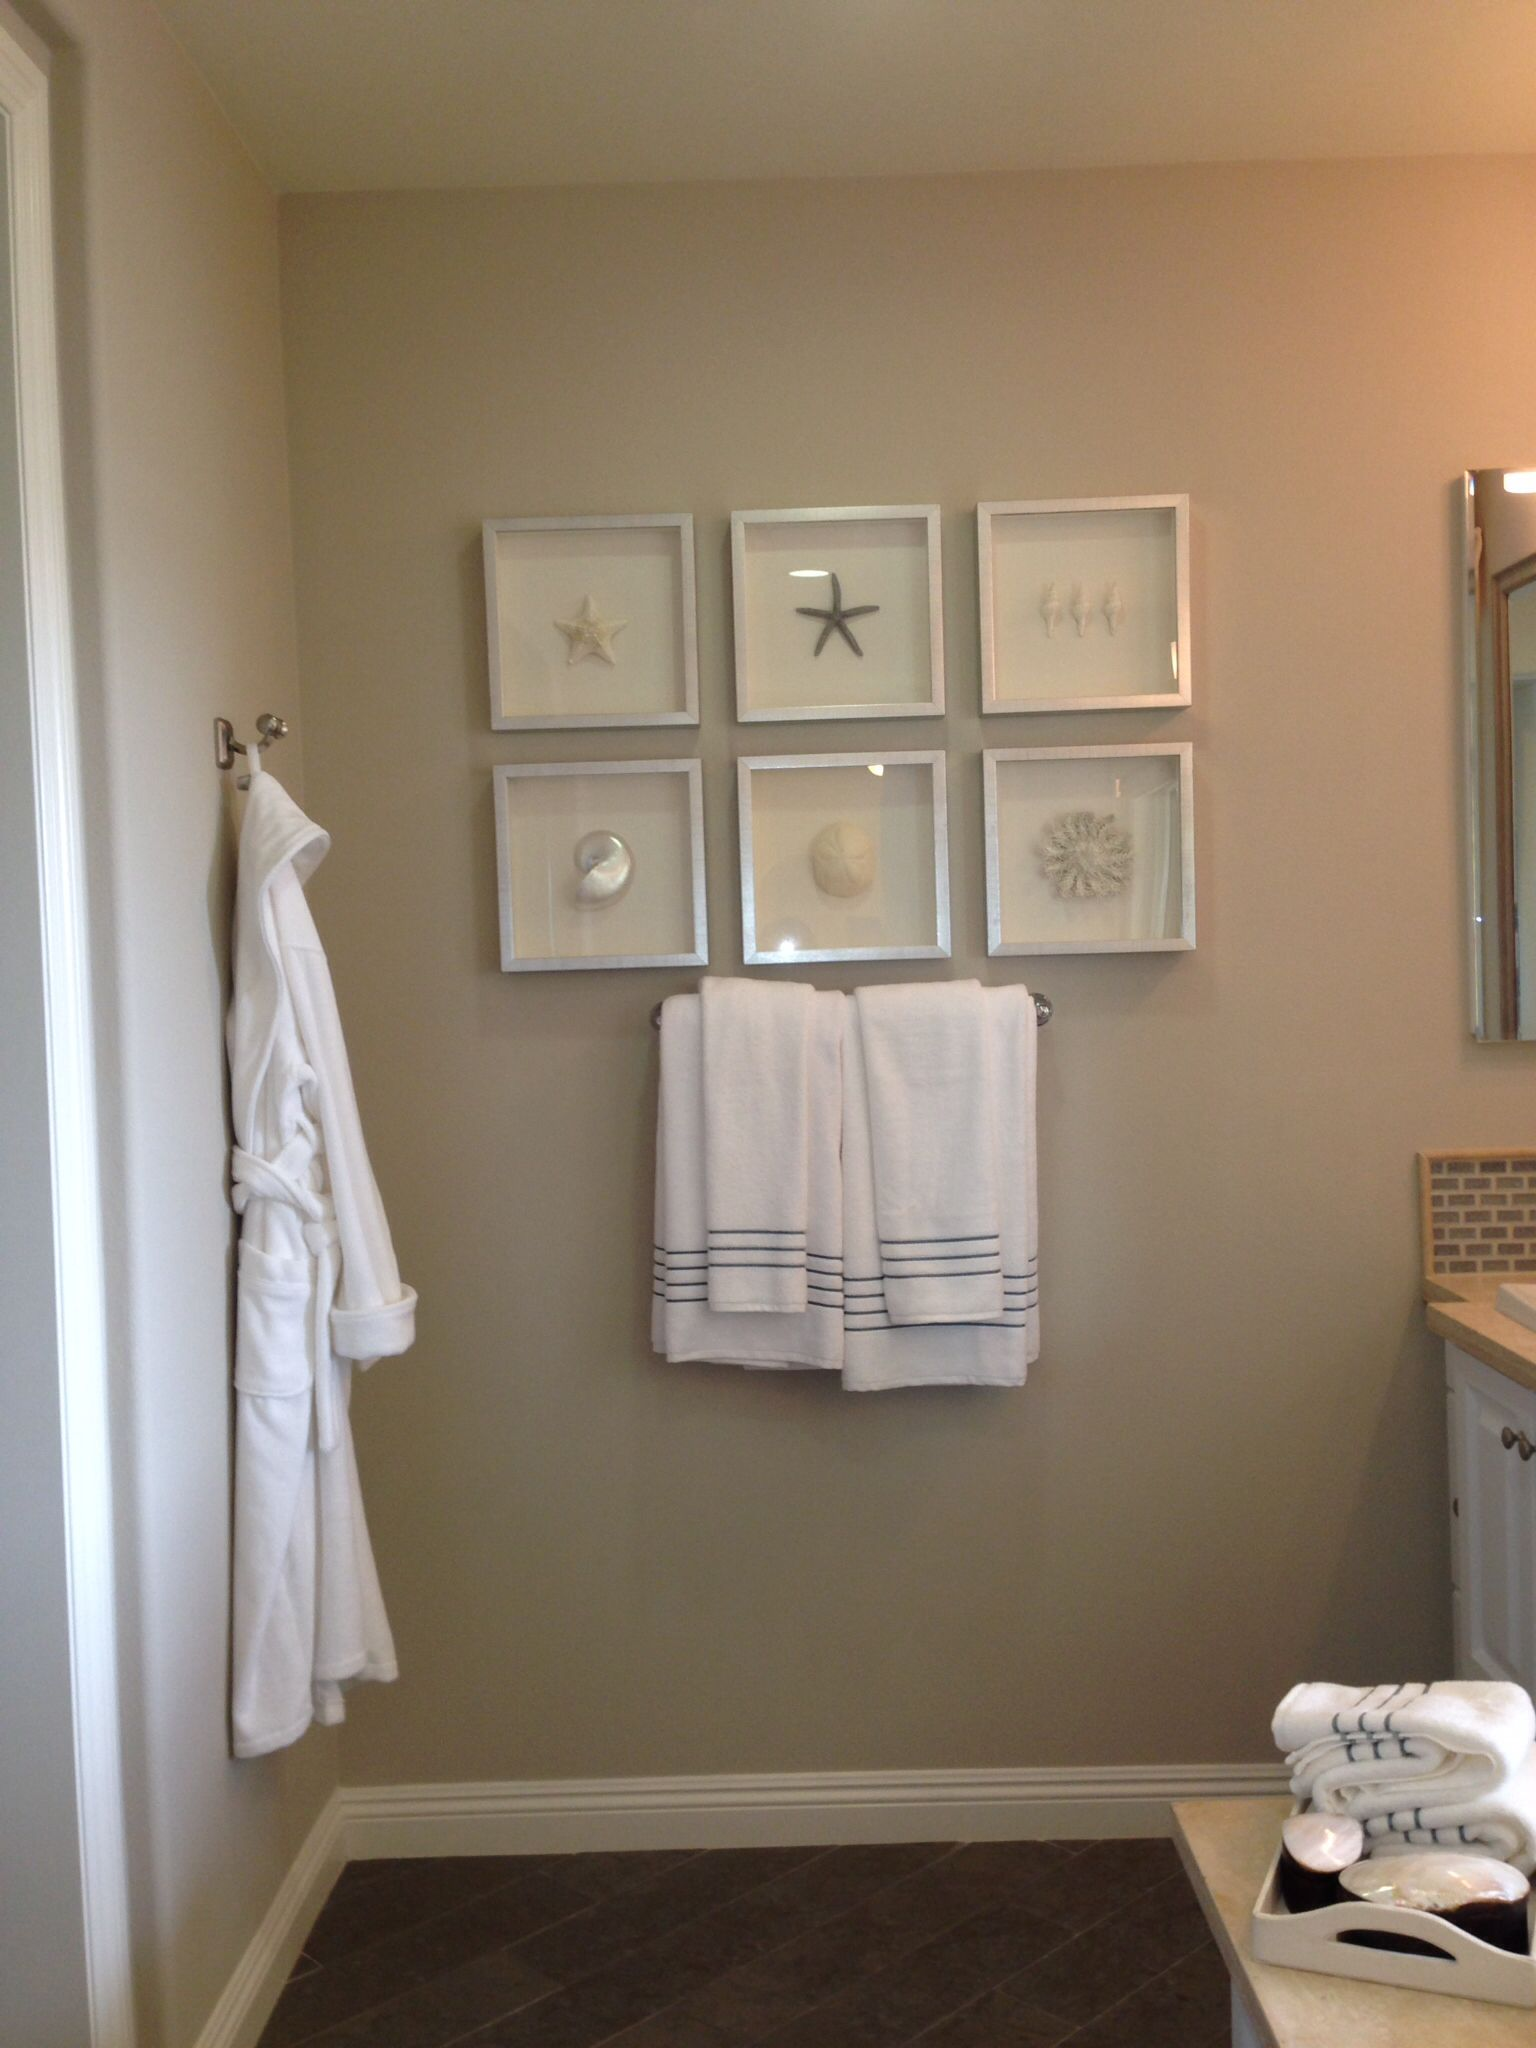 Bathroom beach decor framing ideas model home for Items for bathroom